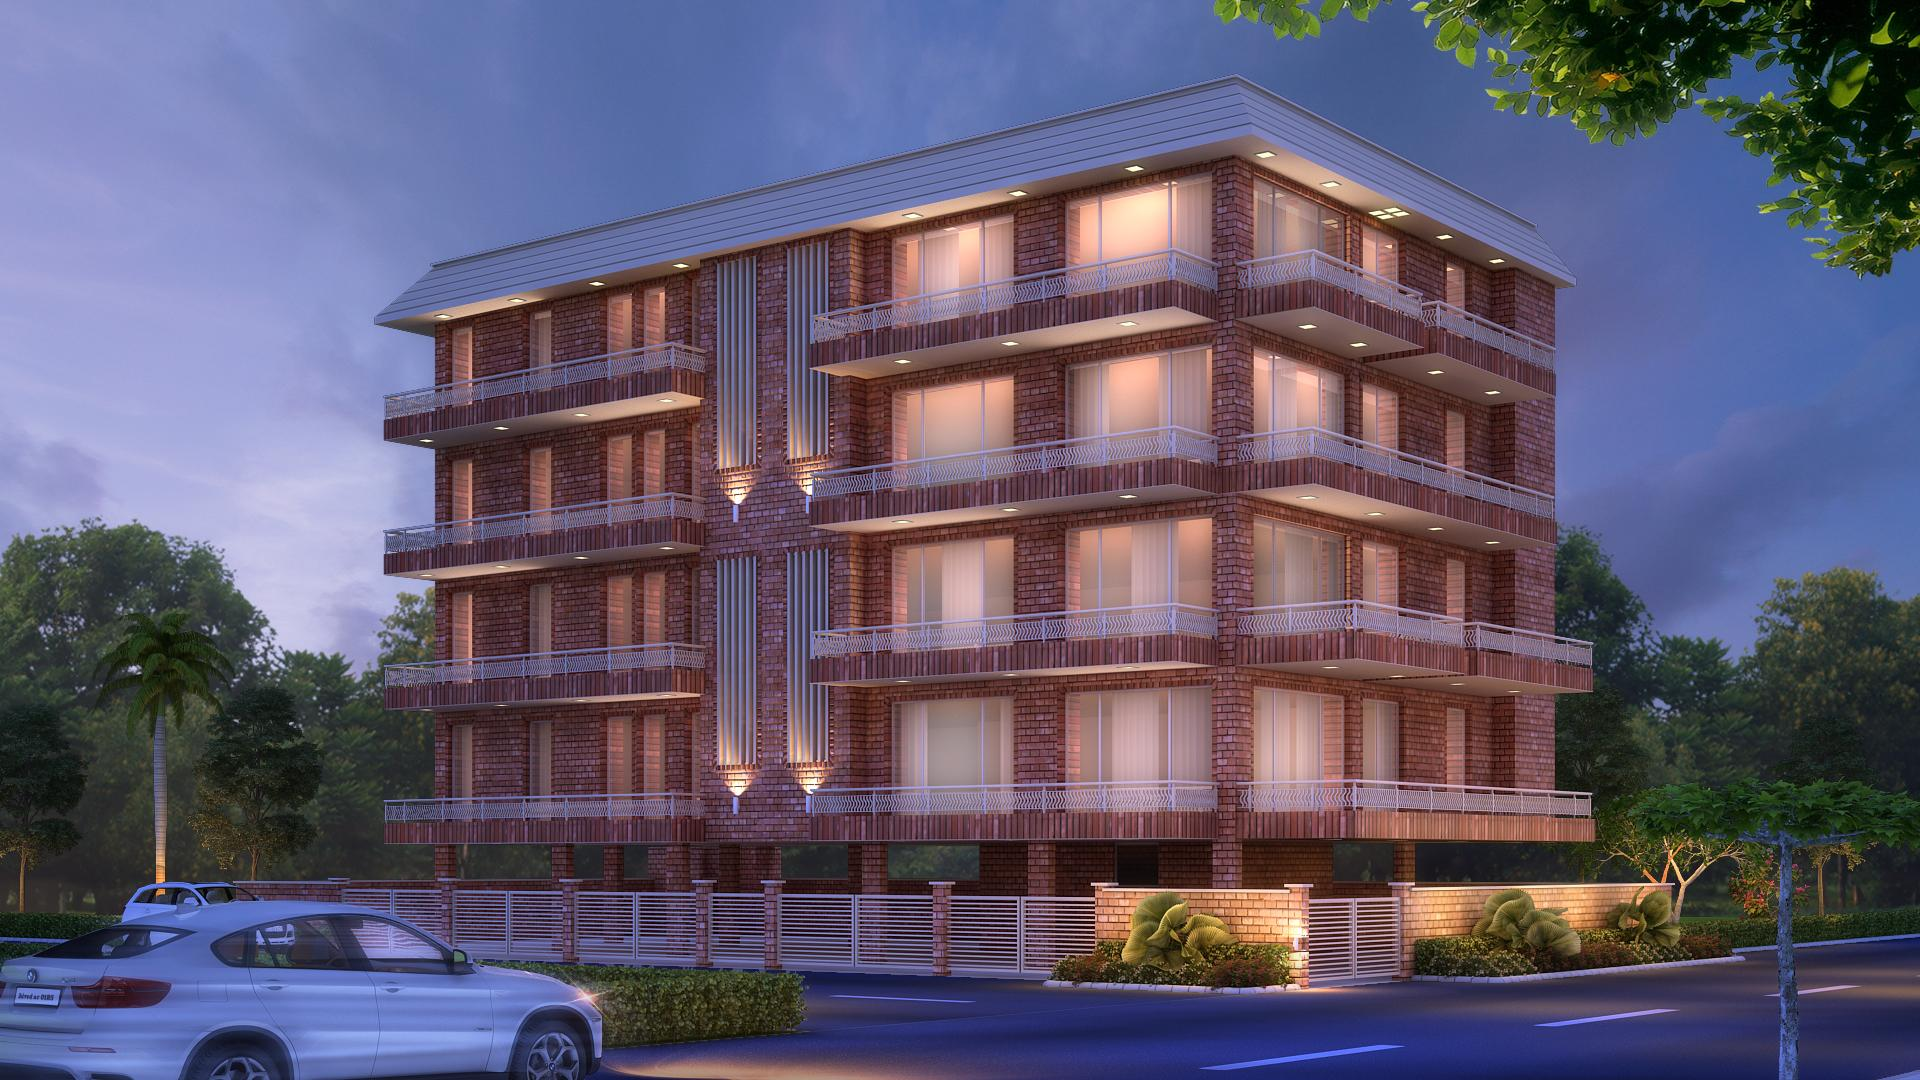 Posh looking corner building located at C-46 Gulmohar Park Built by Florence Homes